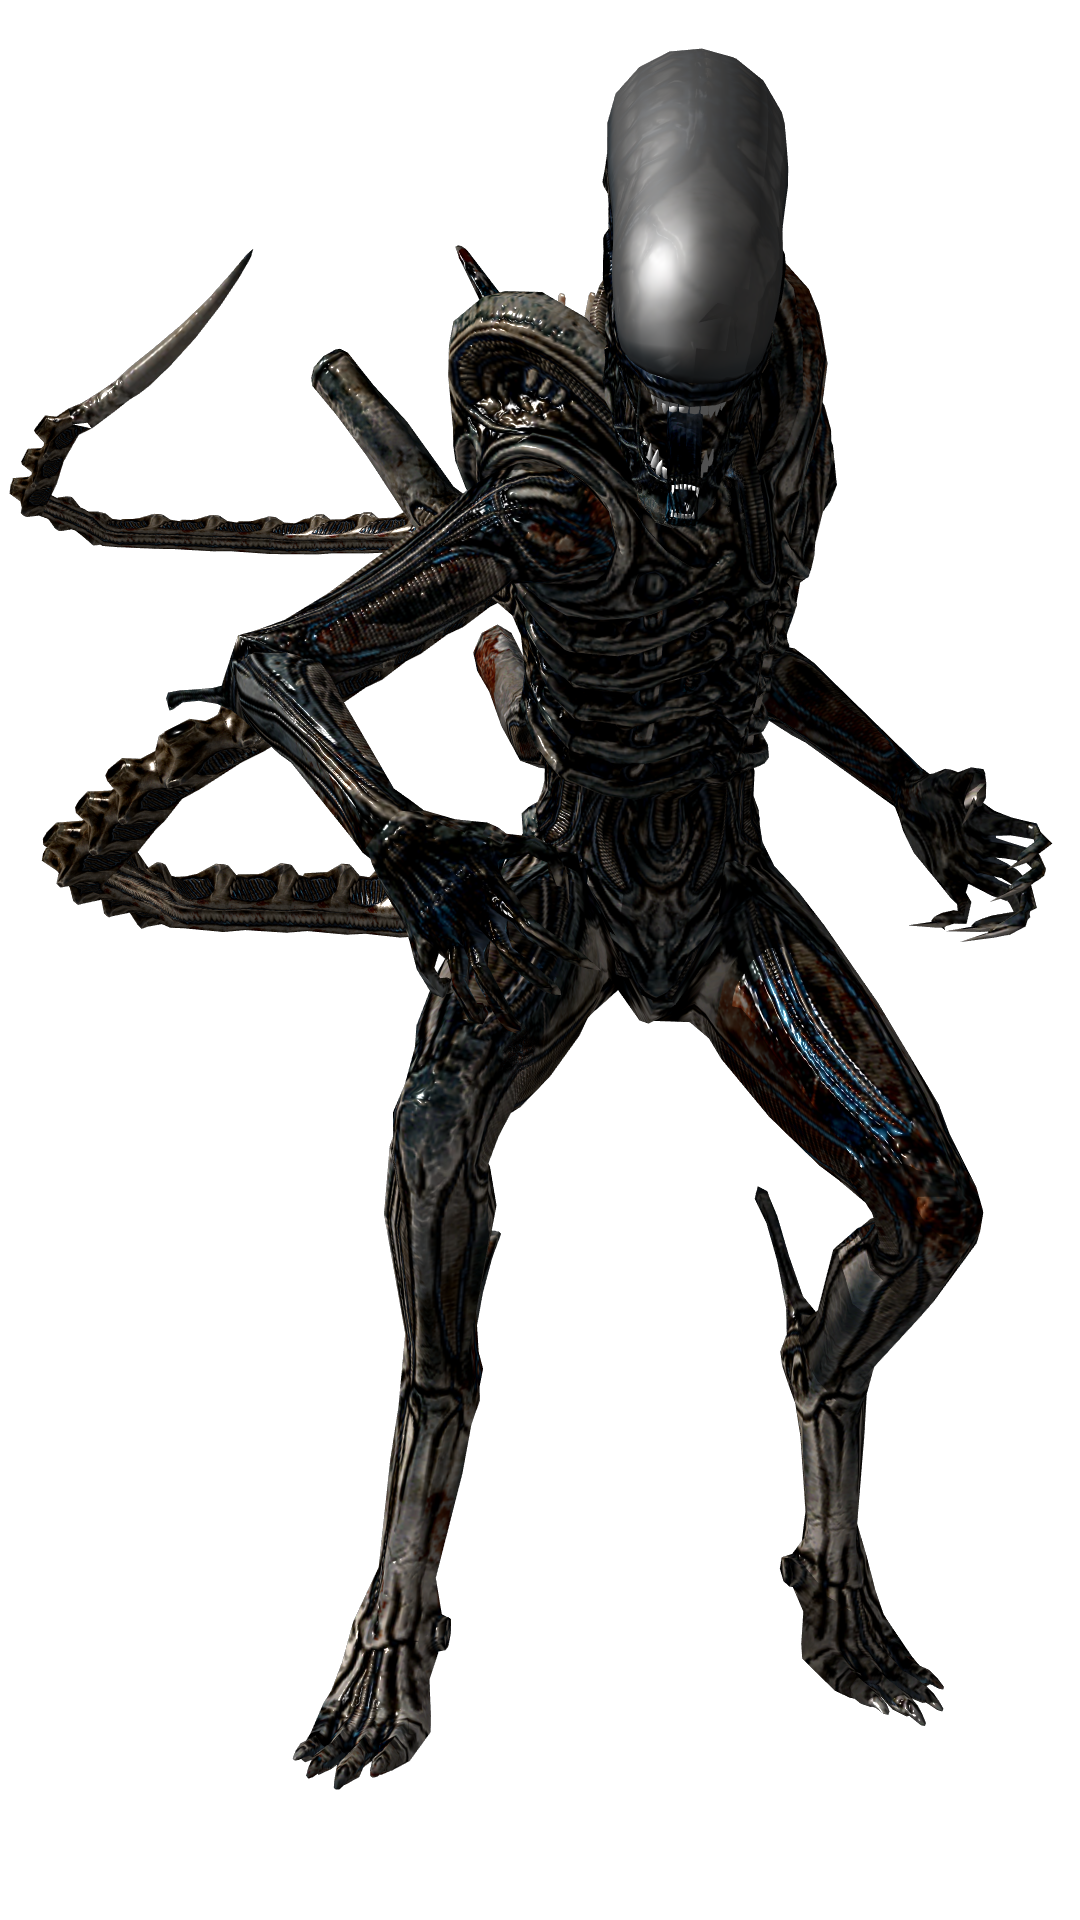 Alien xenomorph png. Image from isolation by